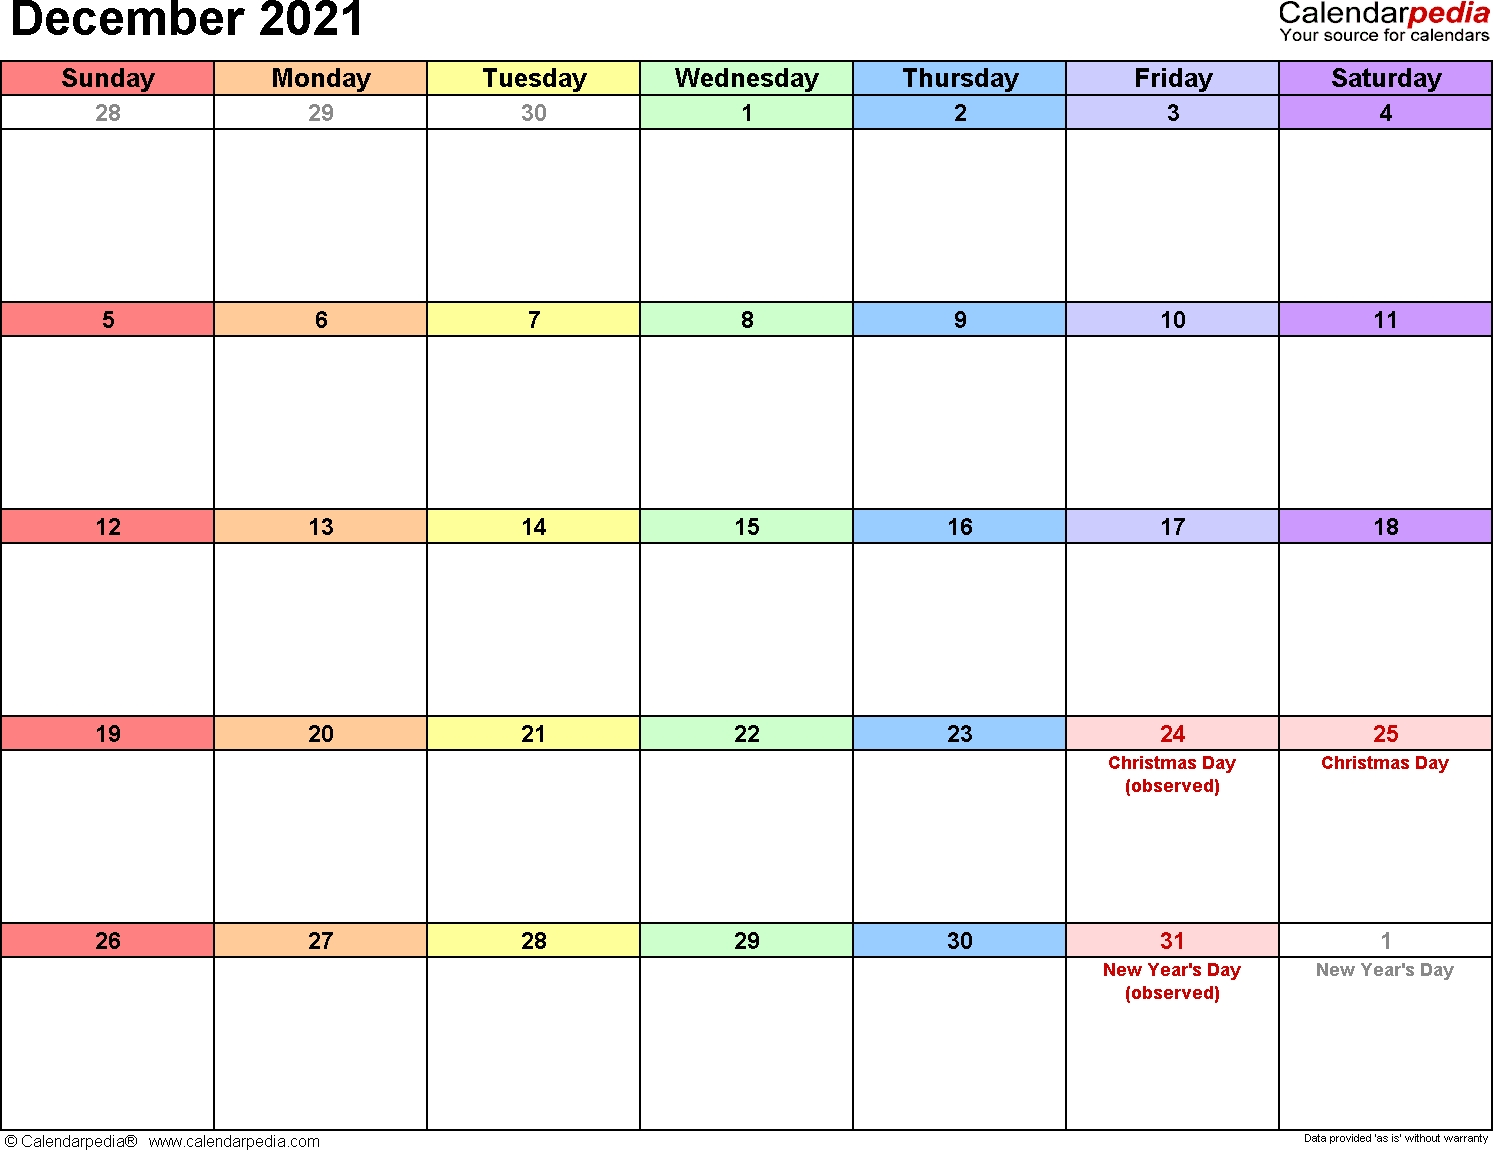 December 2021 Calendars For Word, Excel & Pdf